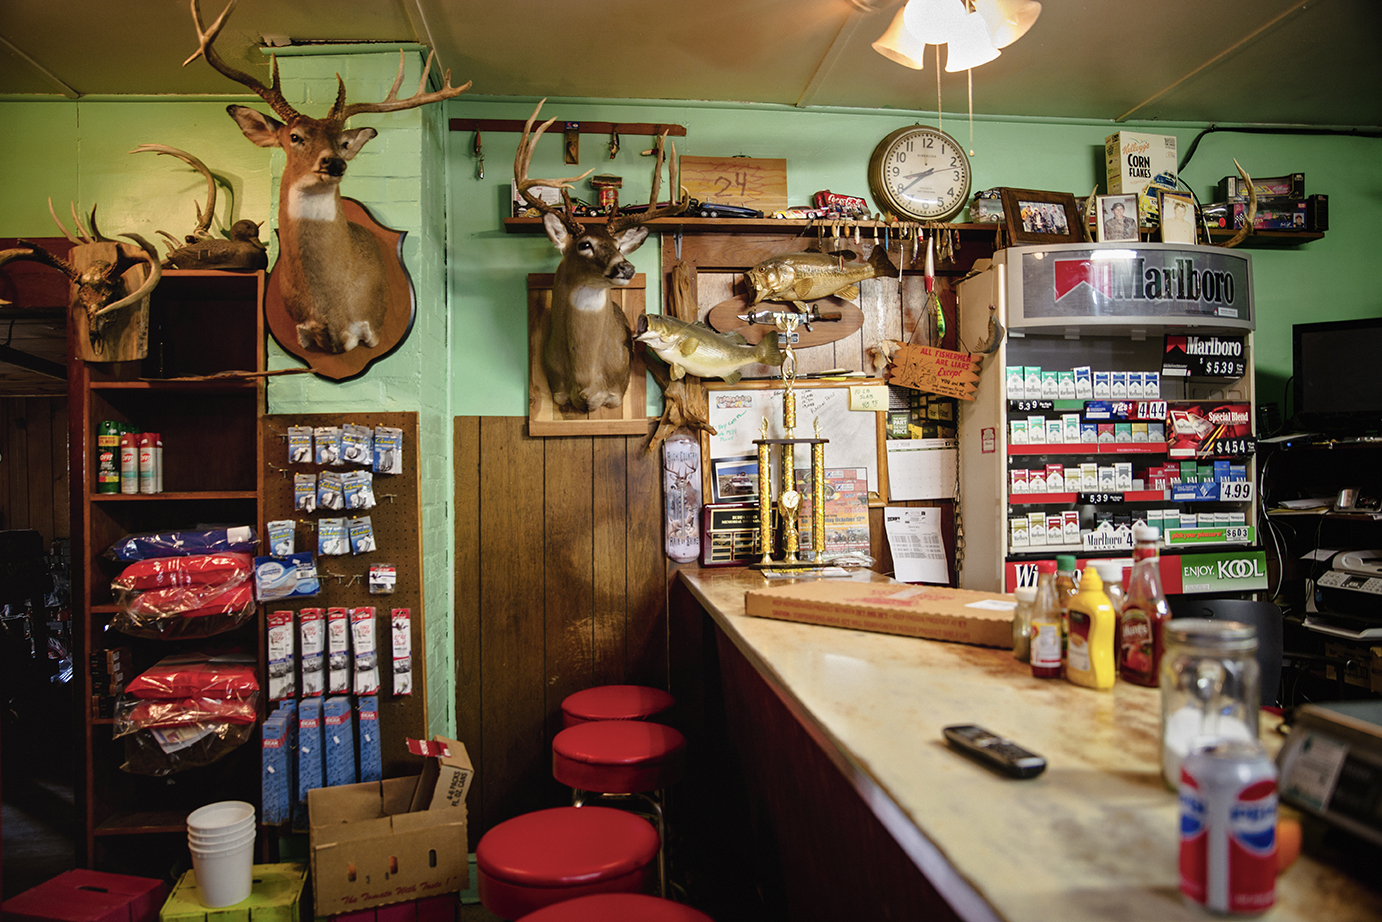 Betty's Inn, Groceries and General Merchandise